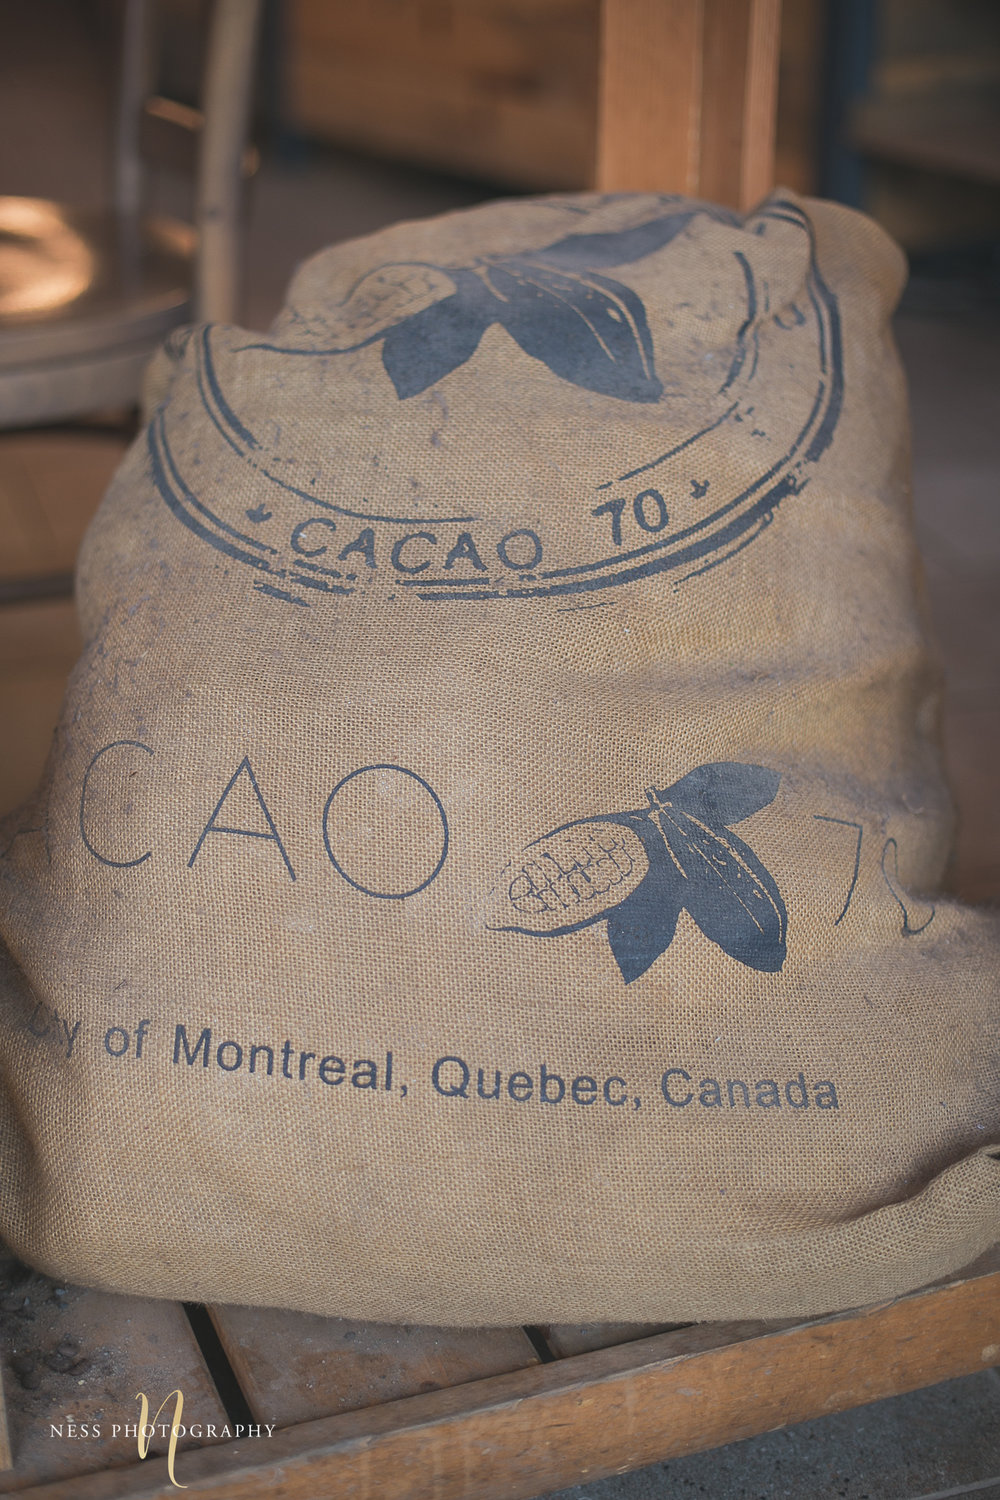 cacao70 bag of cocoa beans during montreal engagement photoshoot